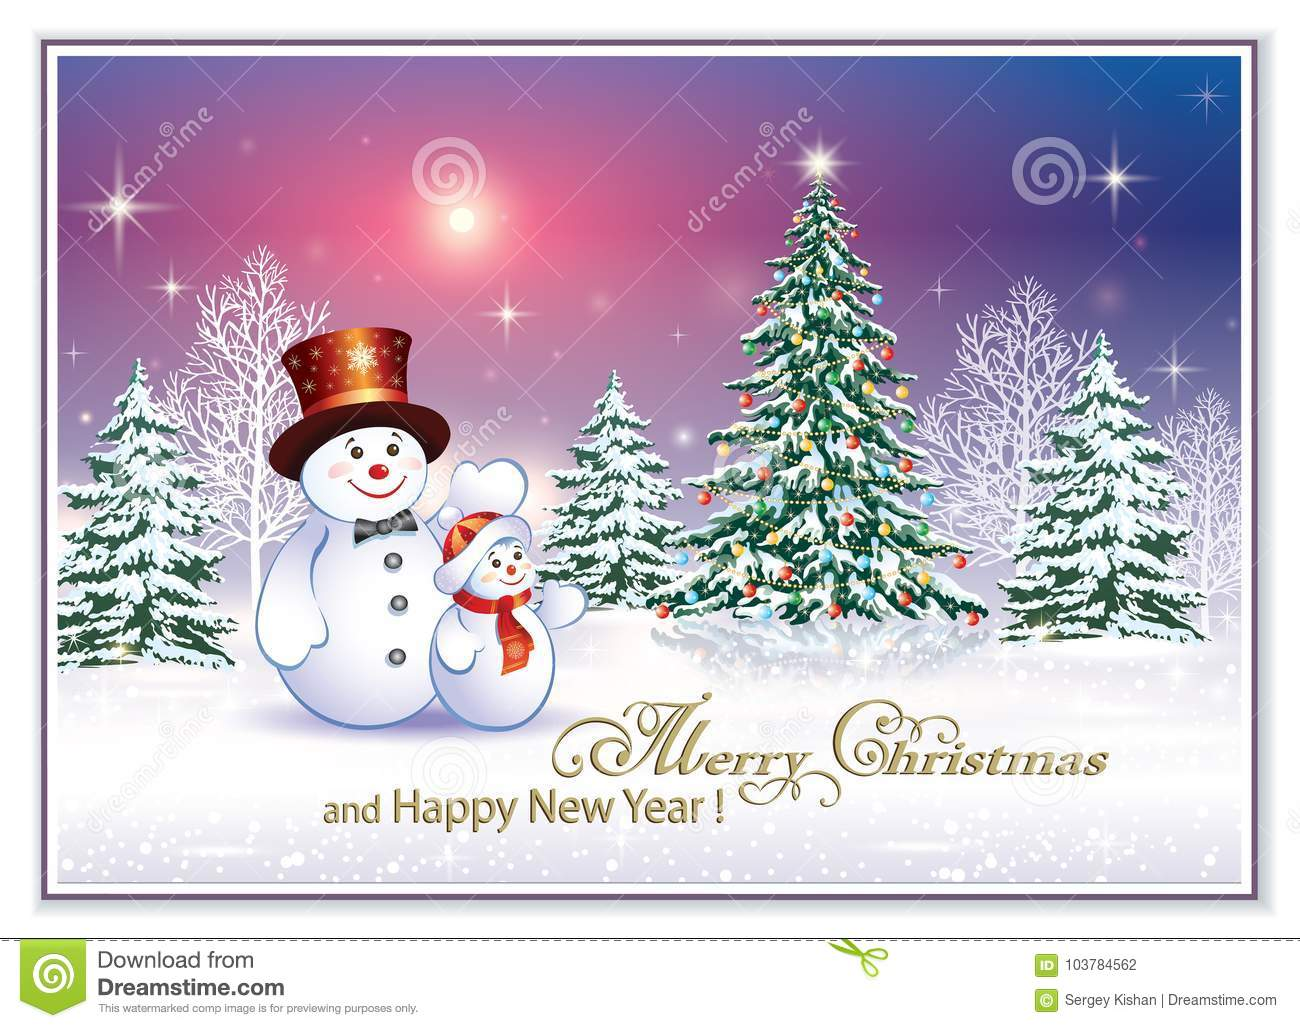 Merry Christmas And Happy New Year 2018 Stock Vector